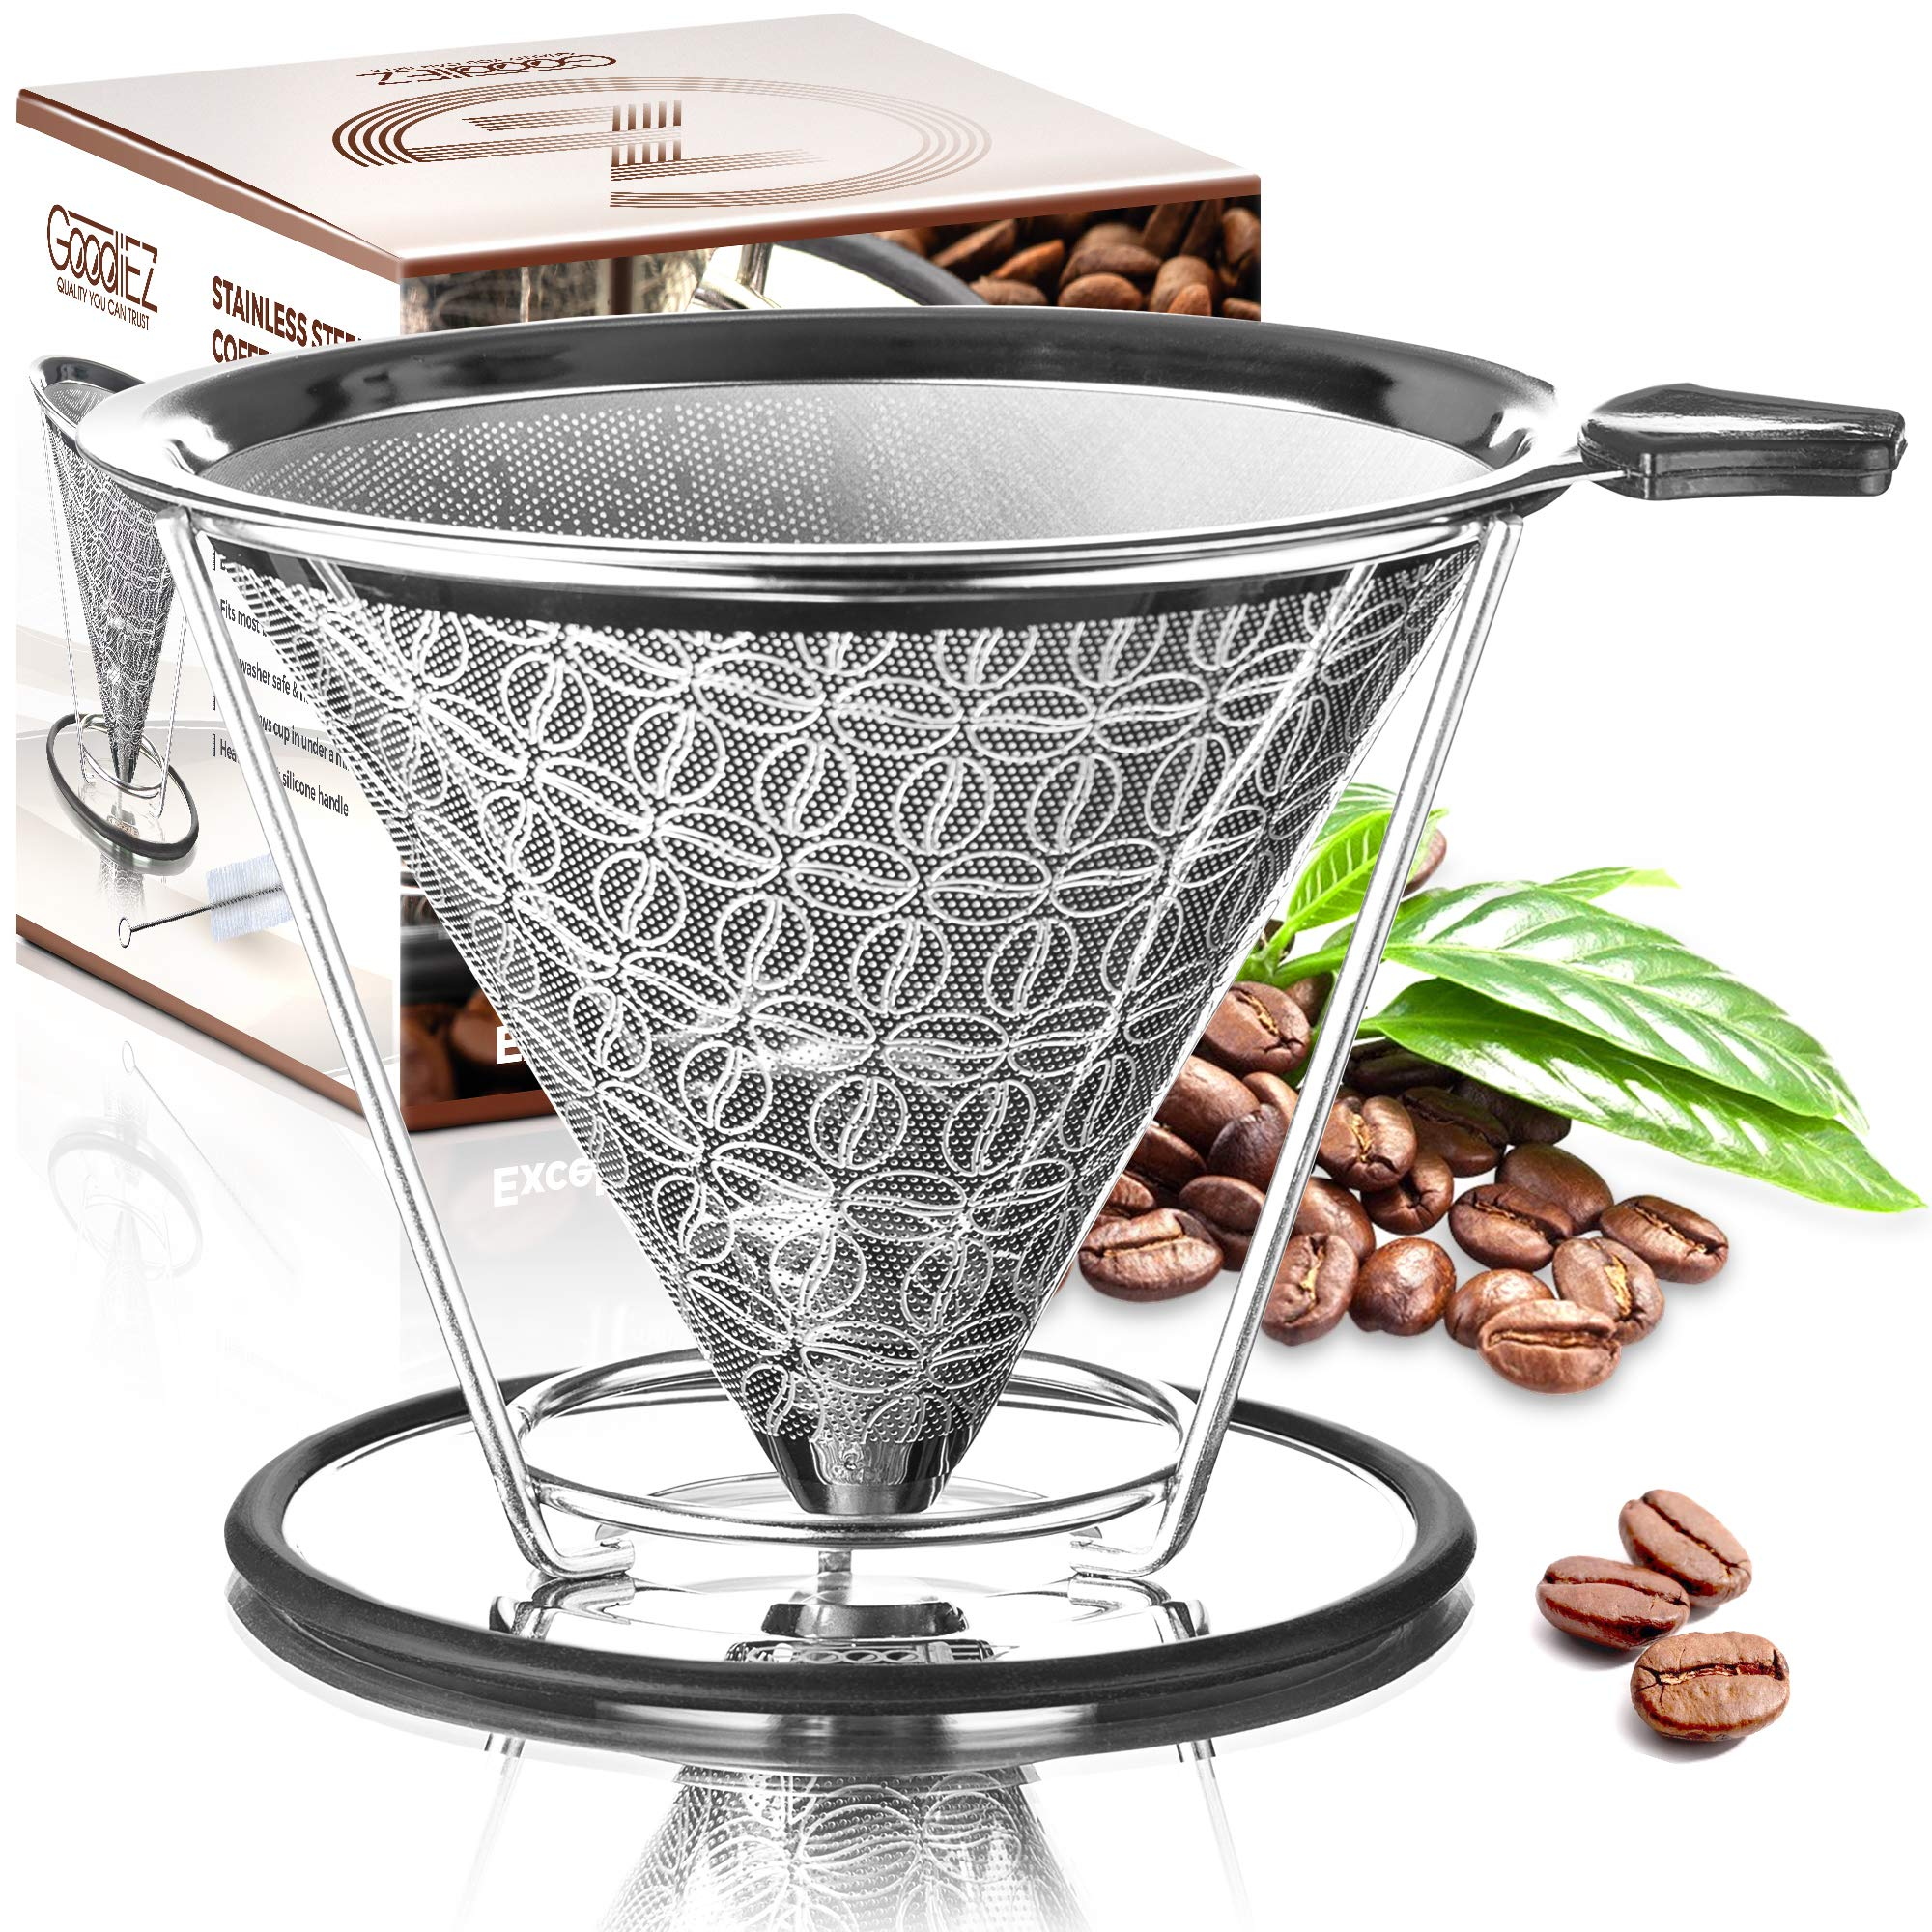 Goodiez Coffee Pour over Coffee Maker-Pour over Coffee Dripper Kit-Reusable Pour over Coffee Filter-Stainless Steel Coffee Filter Mesh-Metal Drip Coffee Cone Brewer Pourover for Chemex Hario V60 by GoodiEZ